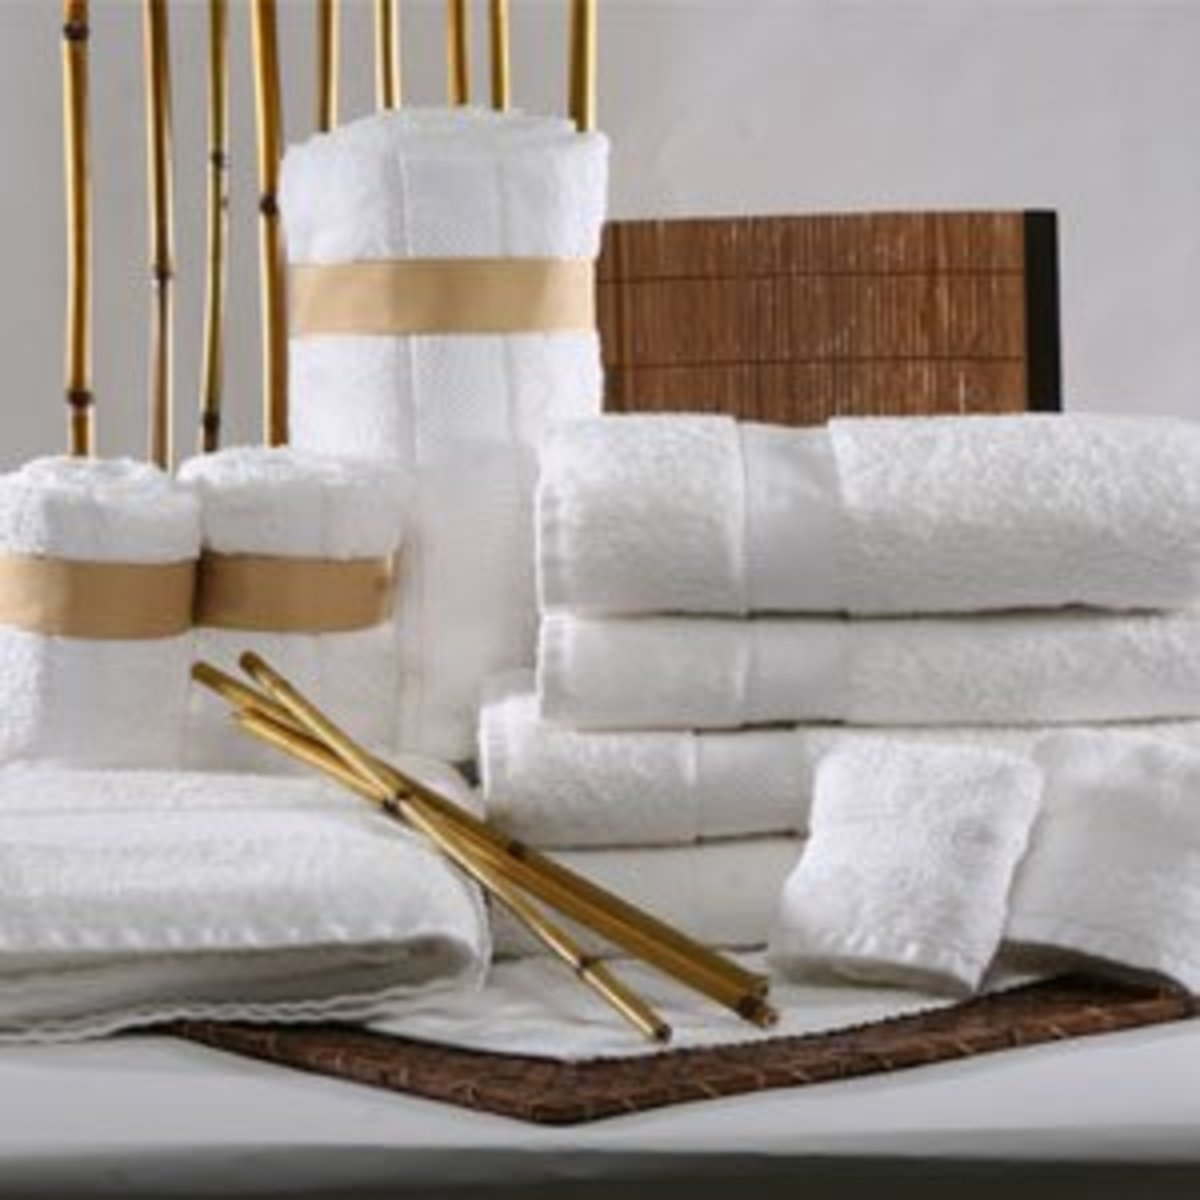 Don't immediately write off Bamboo. You might be surprised that a Bamboo Egyptian Cotton Mix makes for one of the most luxurious bath towels available.